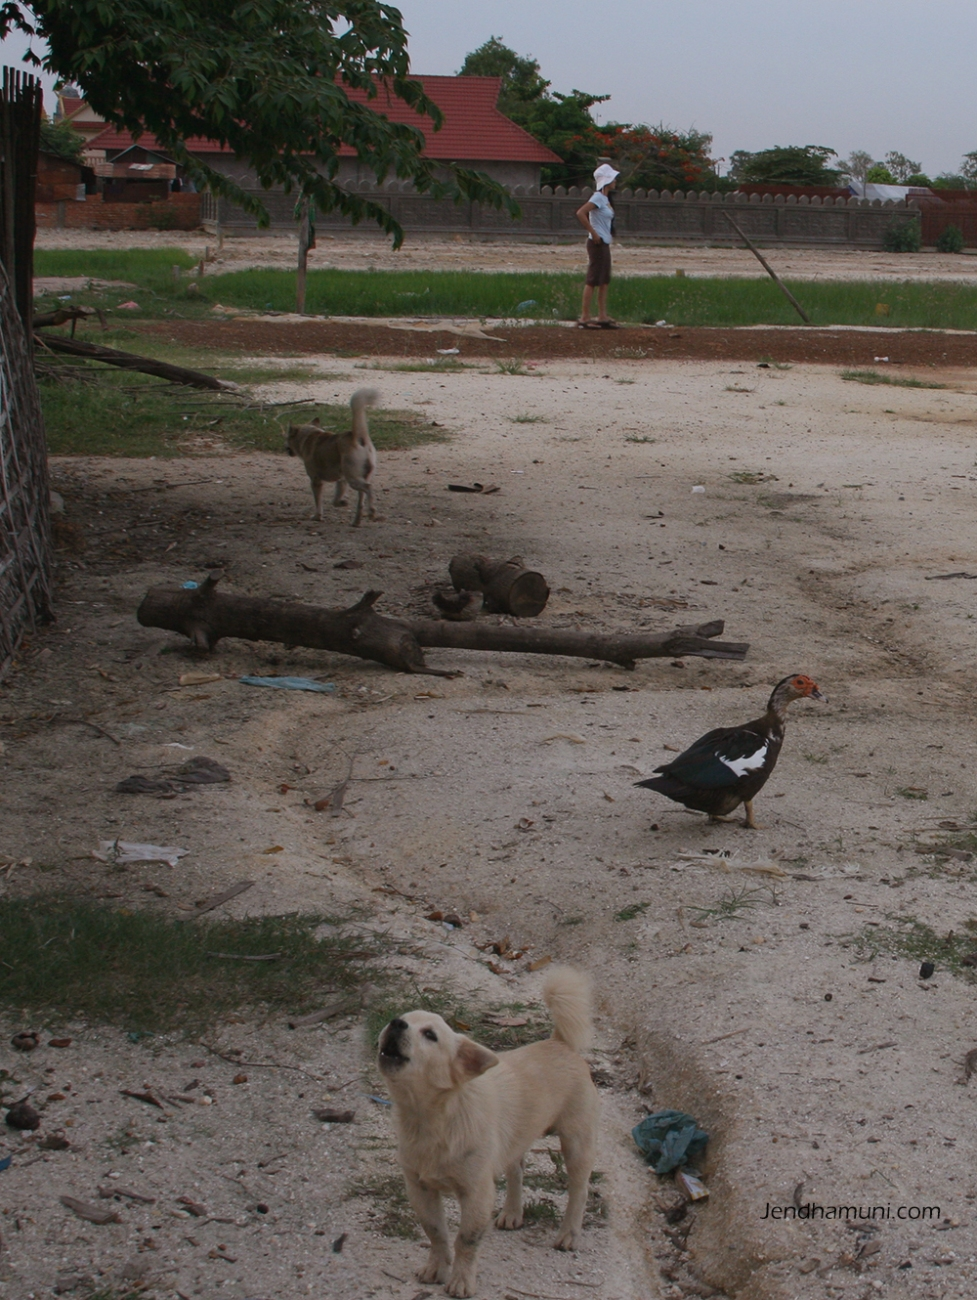 Jendhamuni with dogs